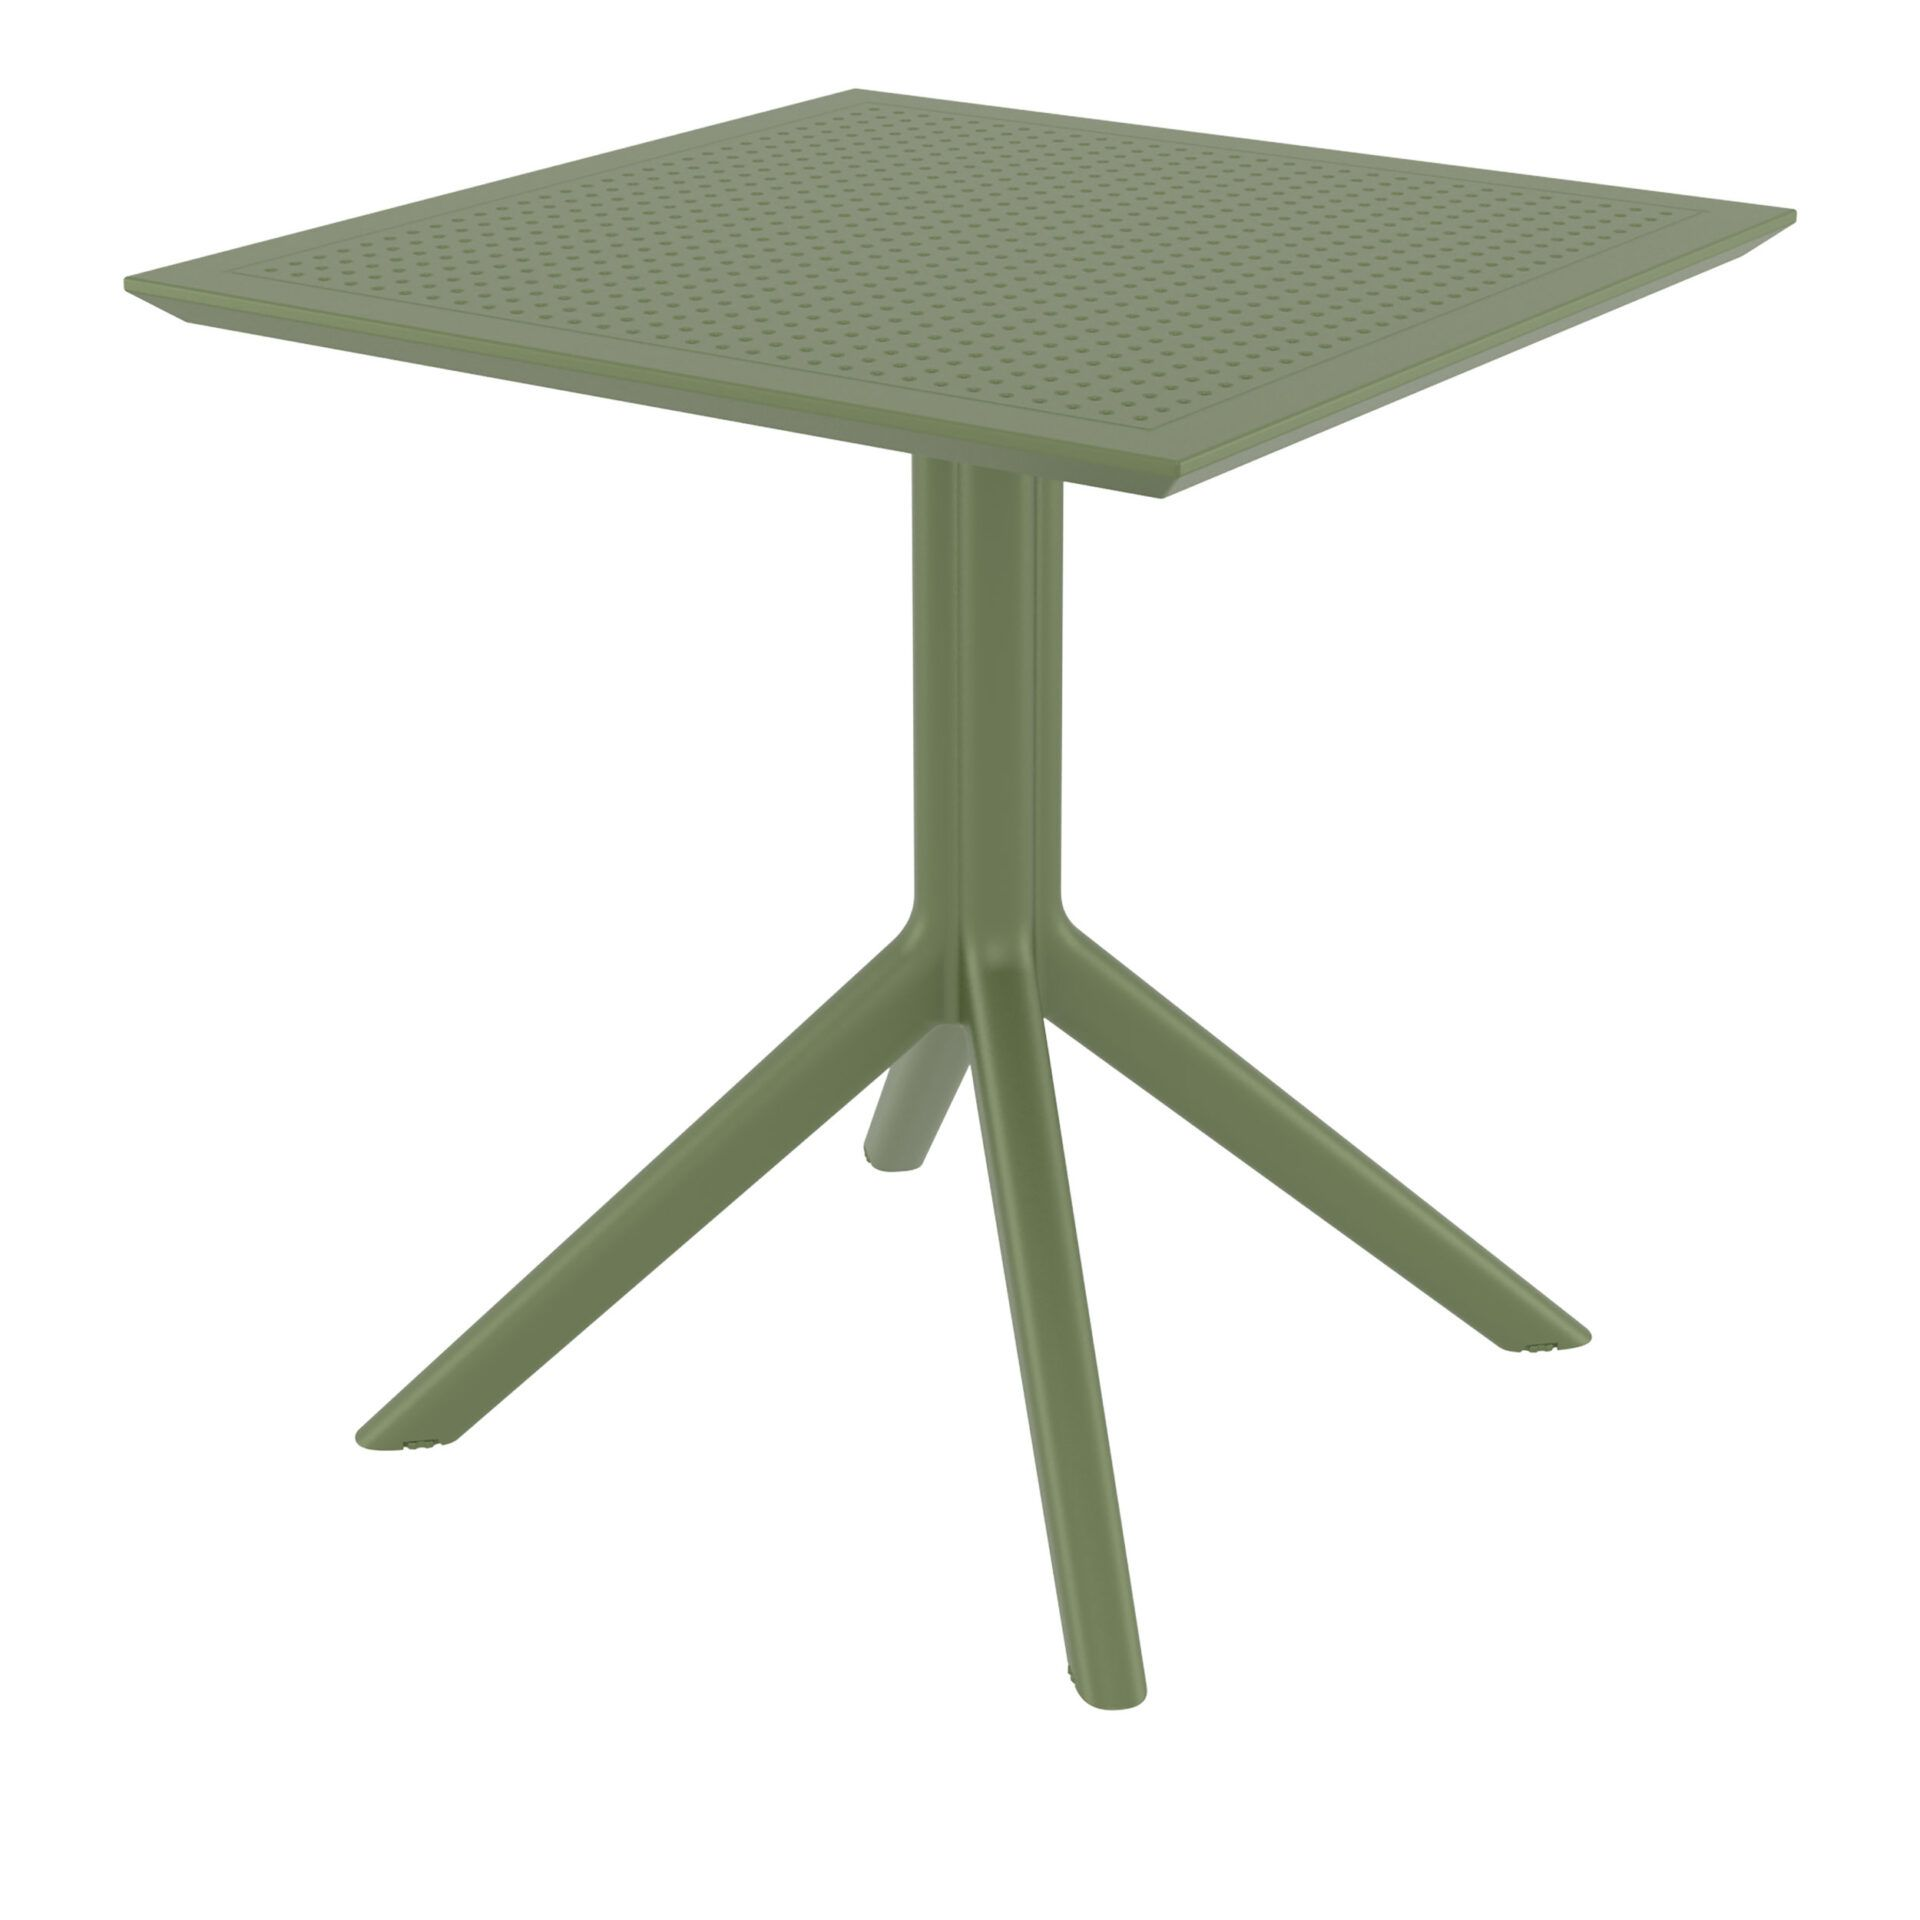 Sky Table 70 - Olive Green